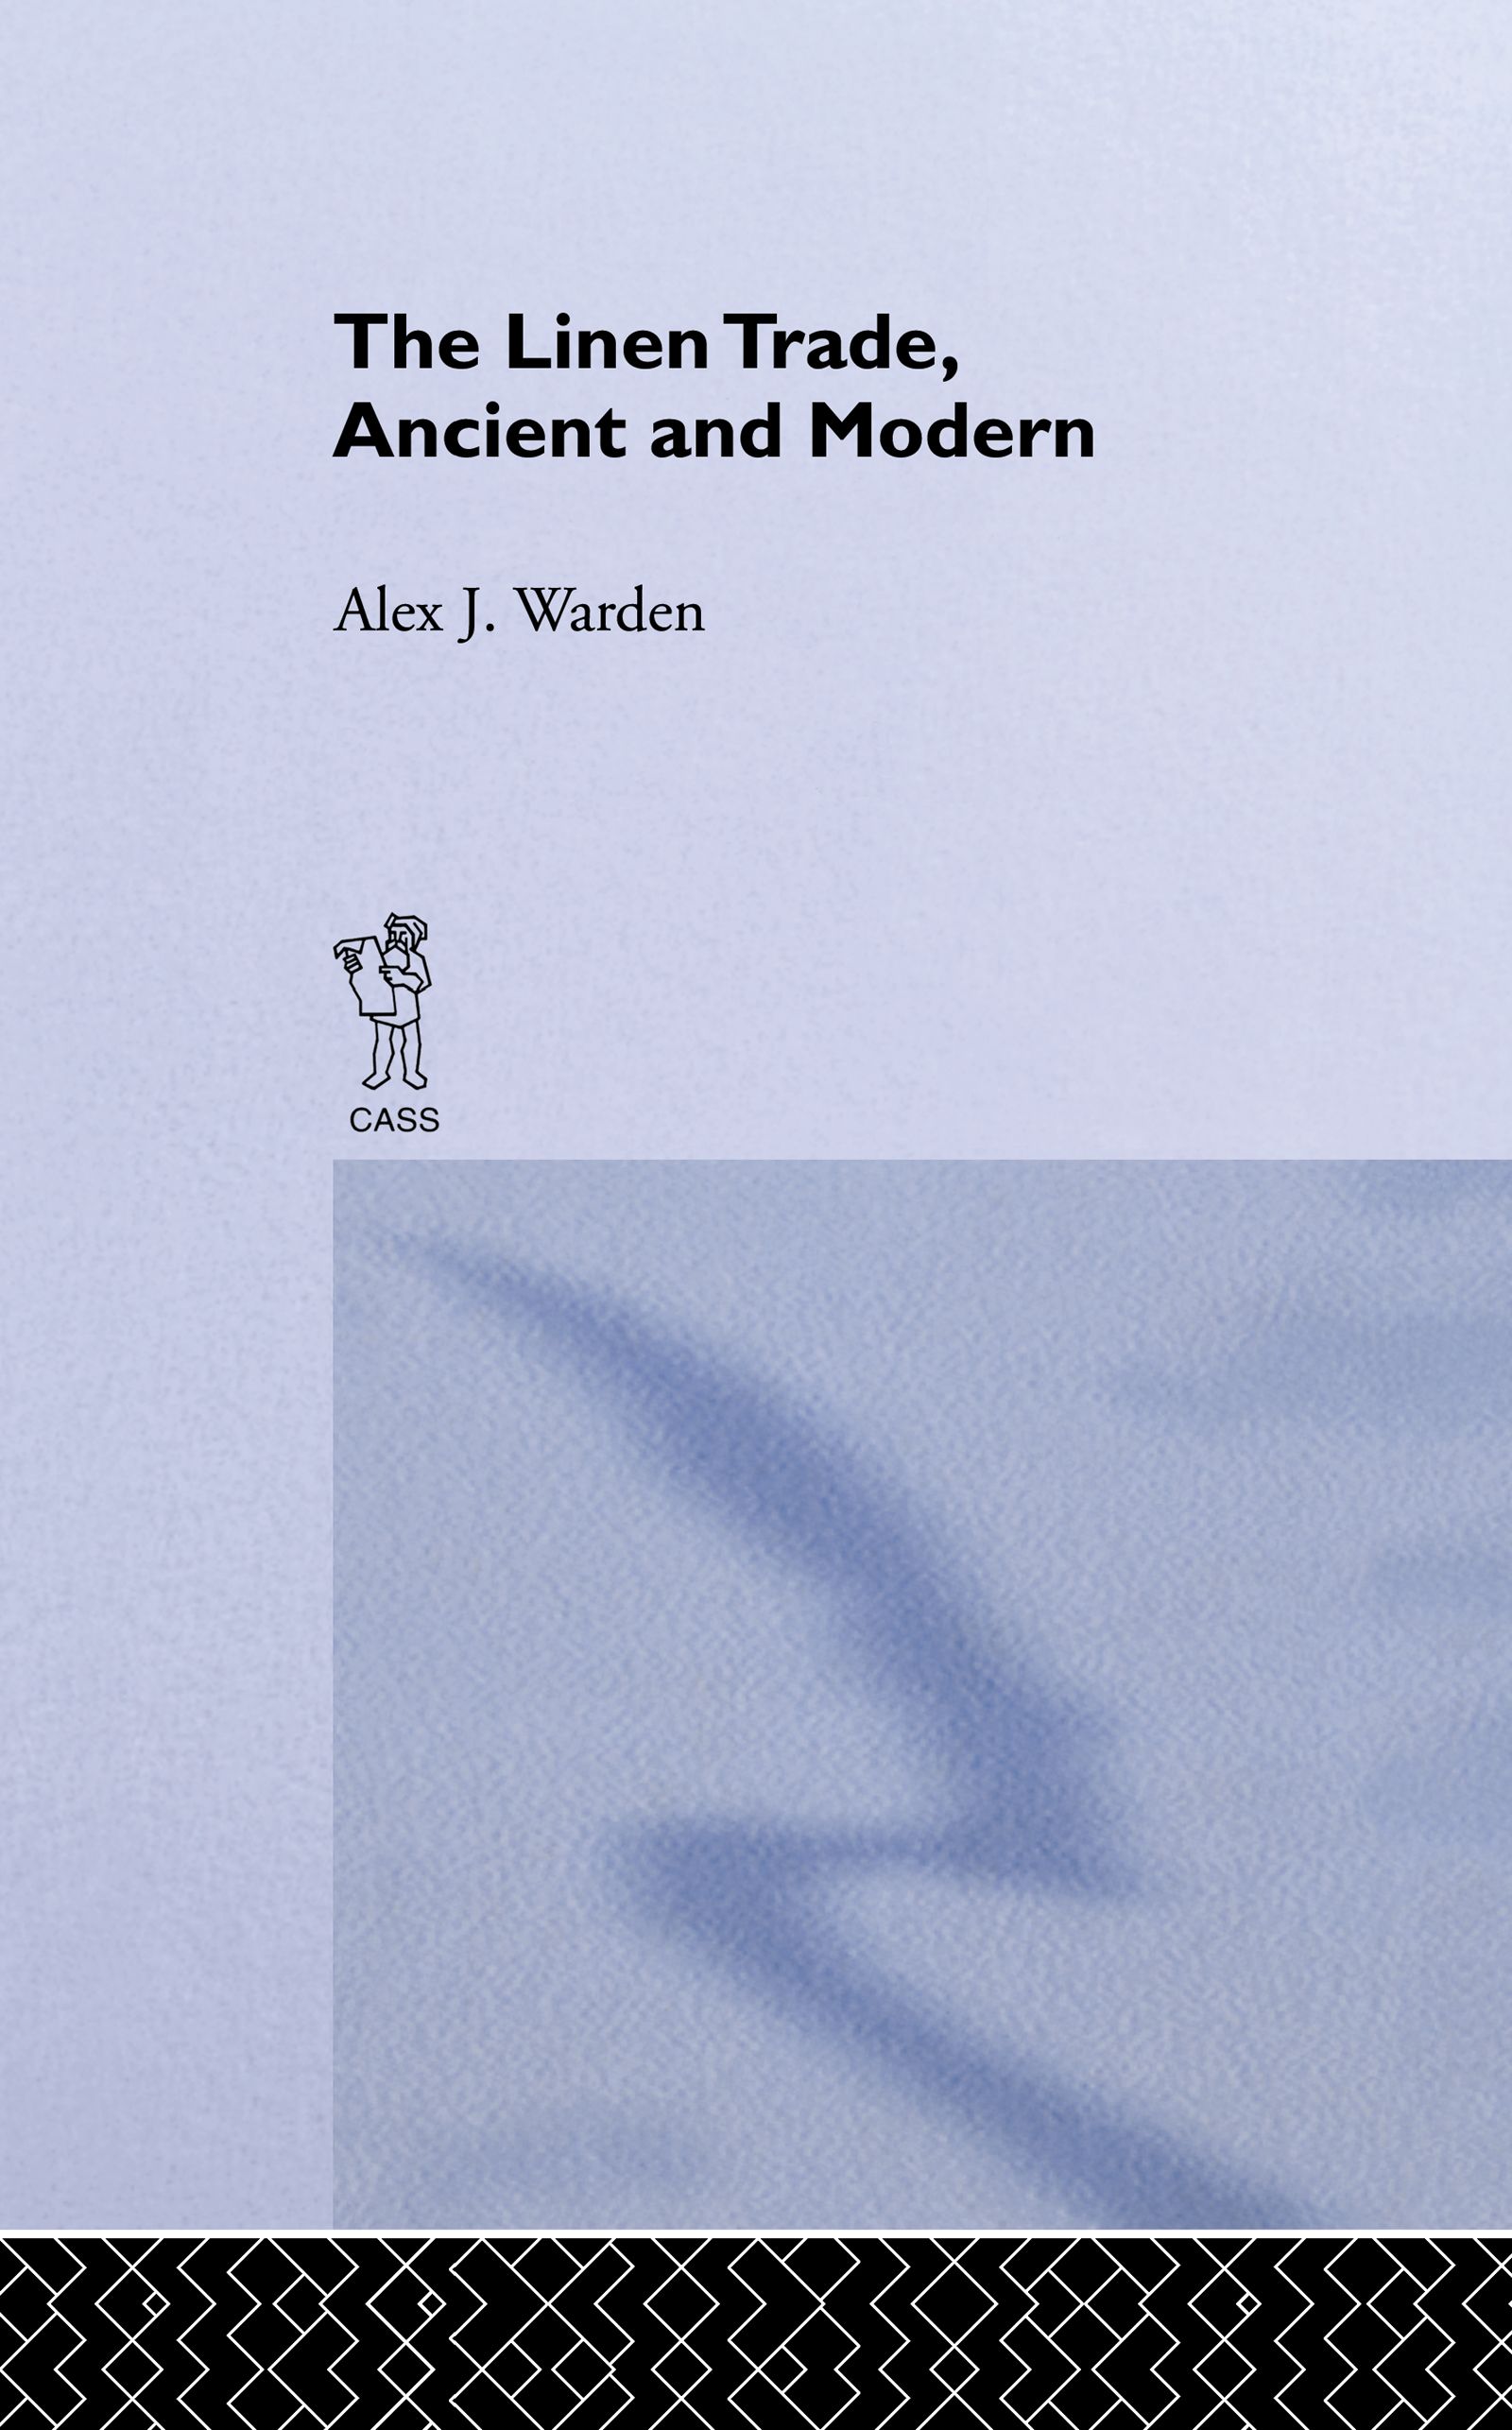 The Linen Trade, Ancient and Modern: Ancient and Modern, 1st Edition (Paperback) book cover